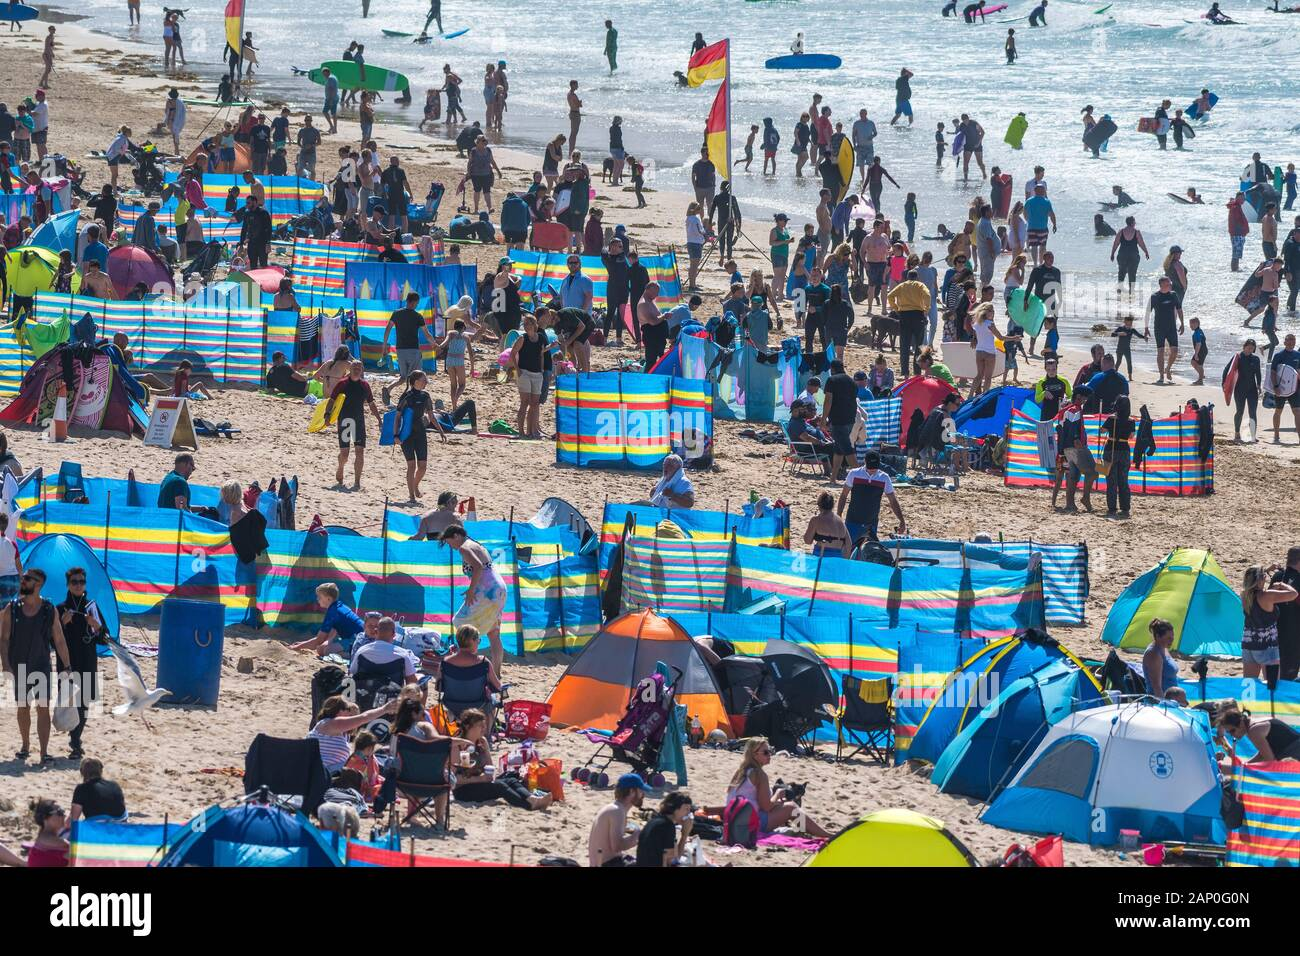 Holidaymakers enjoying themselves on Fistral Beach in Newquay in Cornwall. Stock Photo